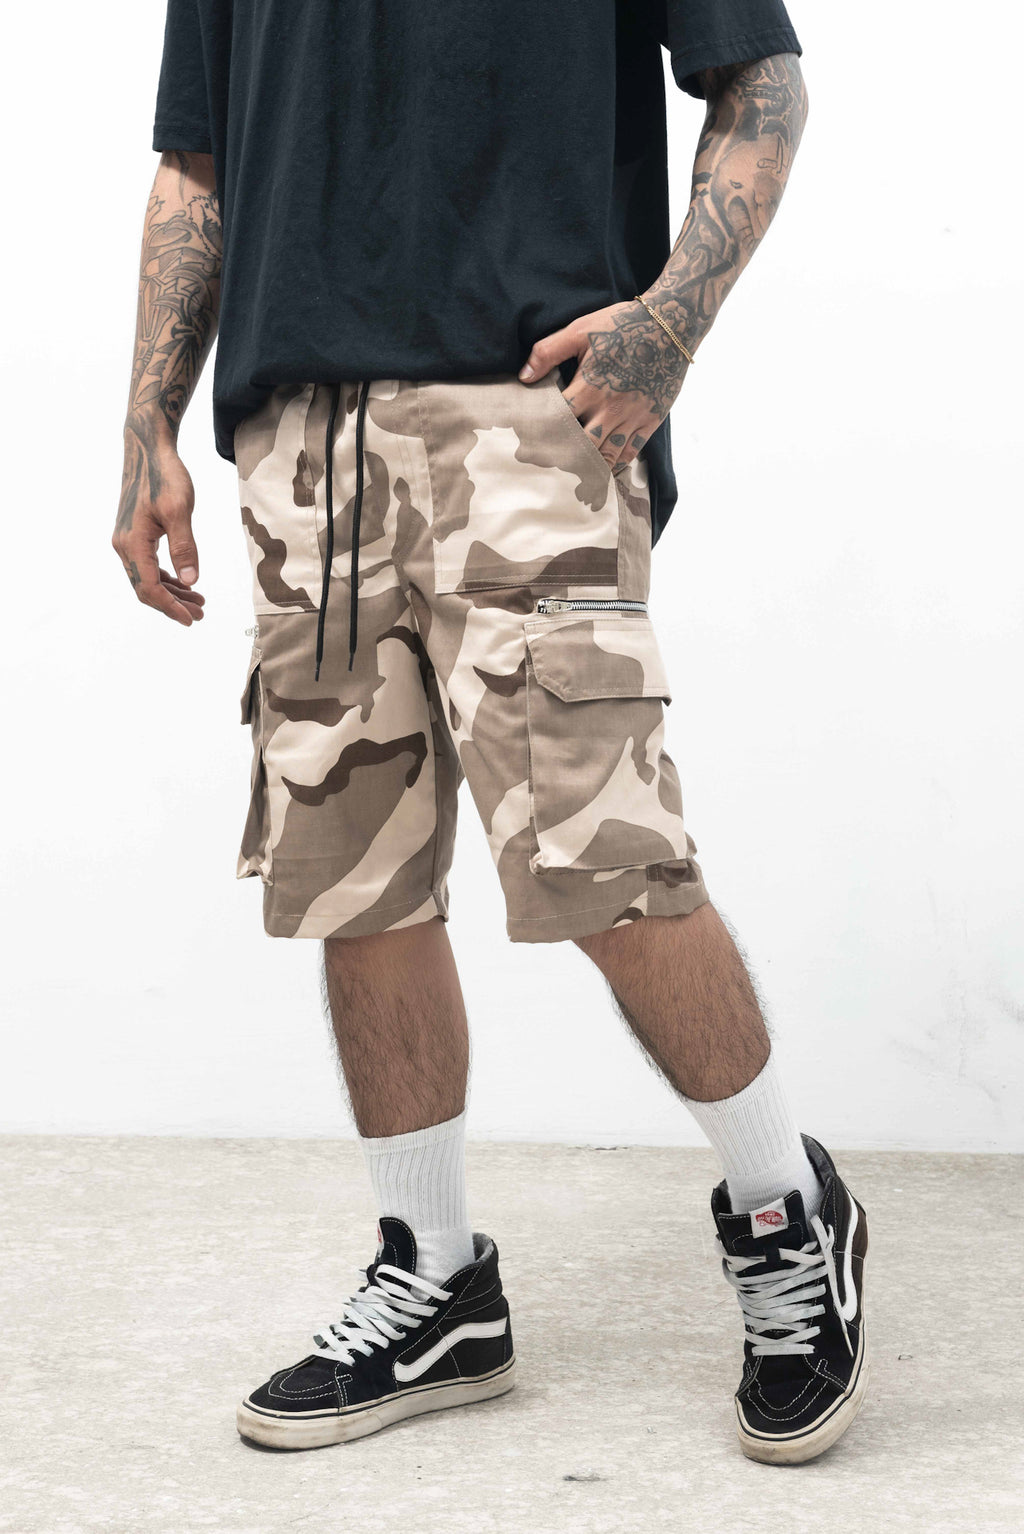 6 POCKETS CAMOU CARGO SHORT - KHAKI